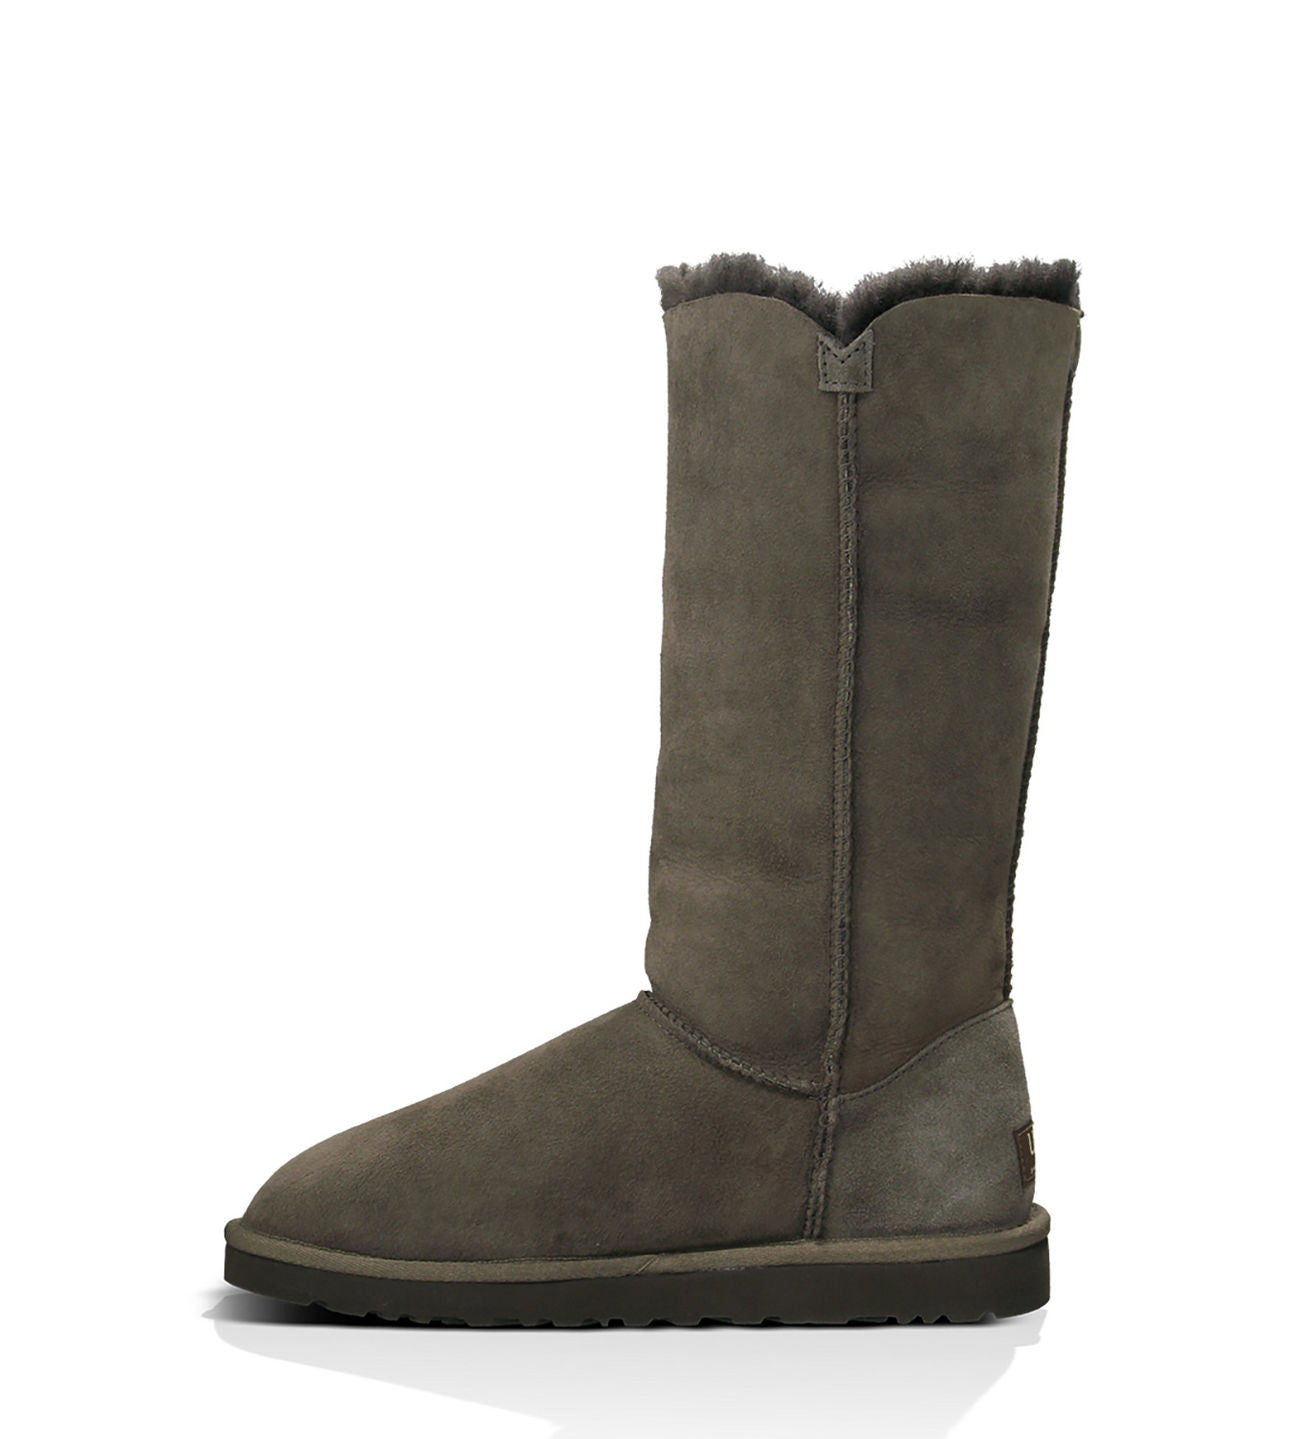 UGG Australia Womens Bailey Button Triplet Chocolate